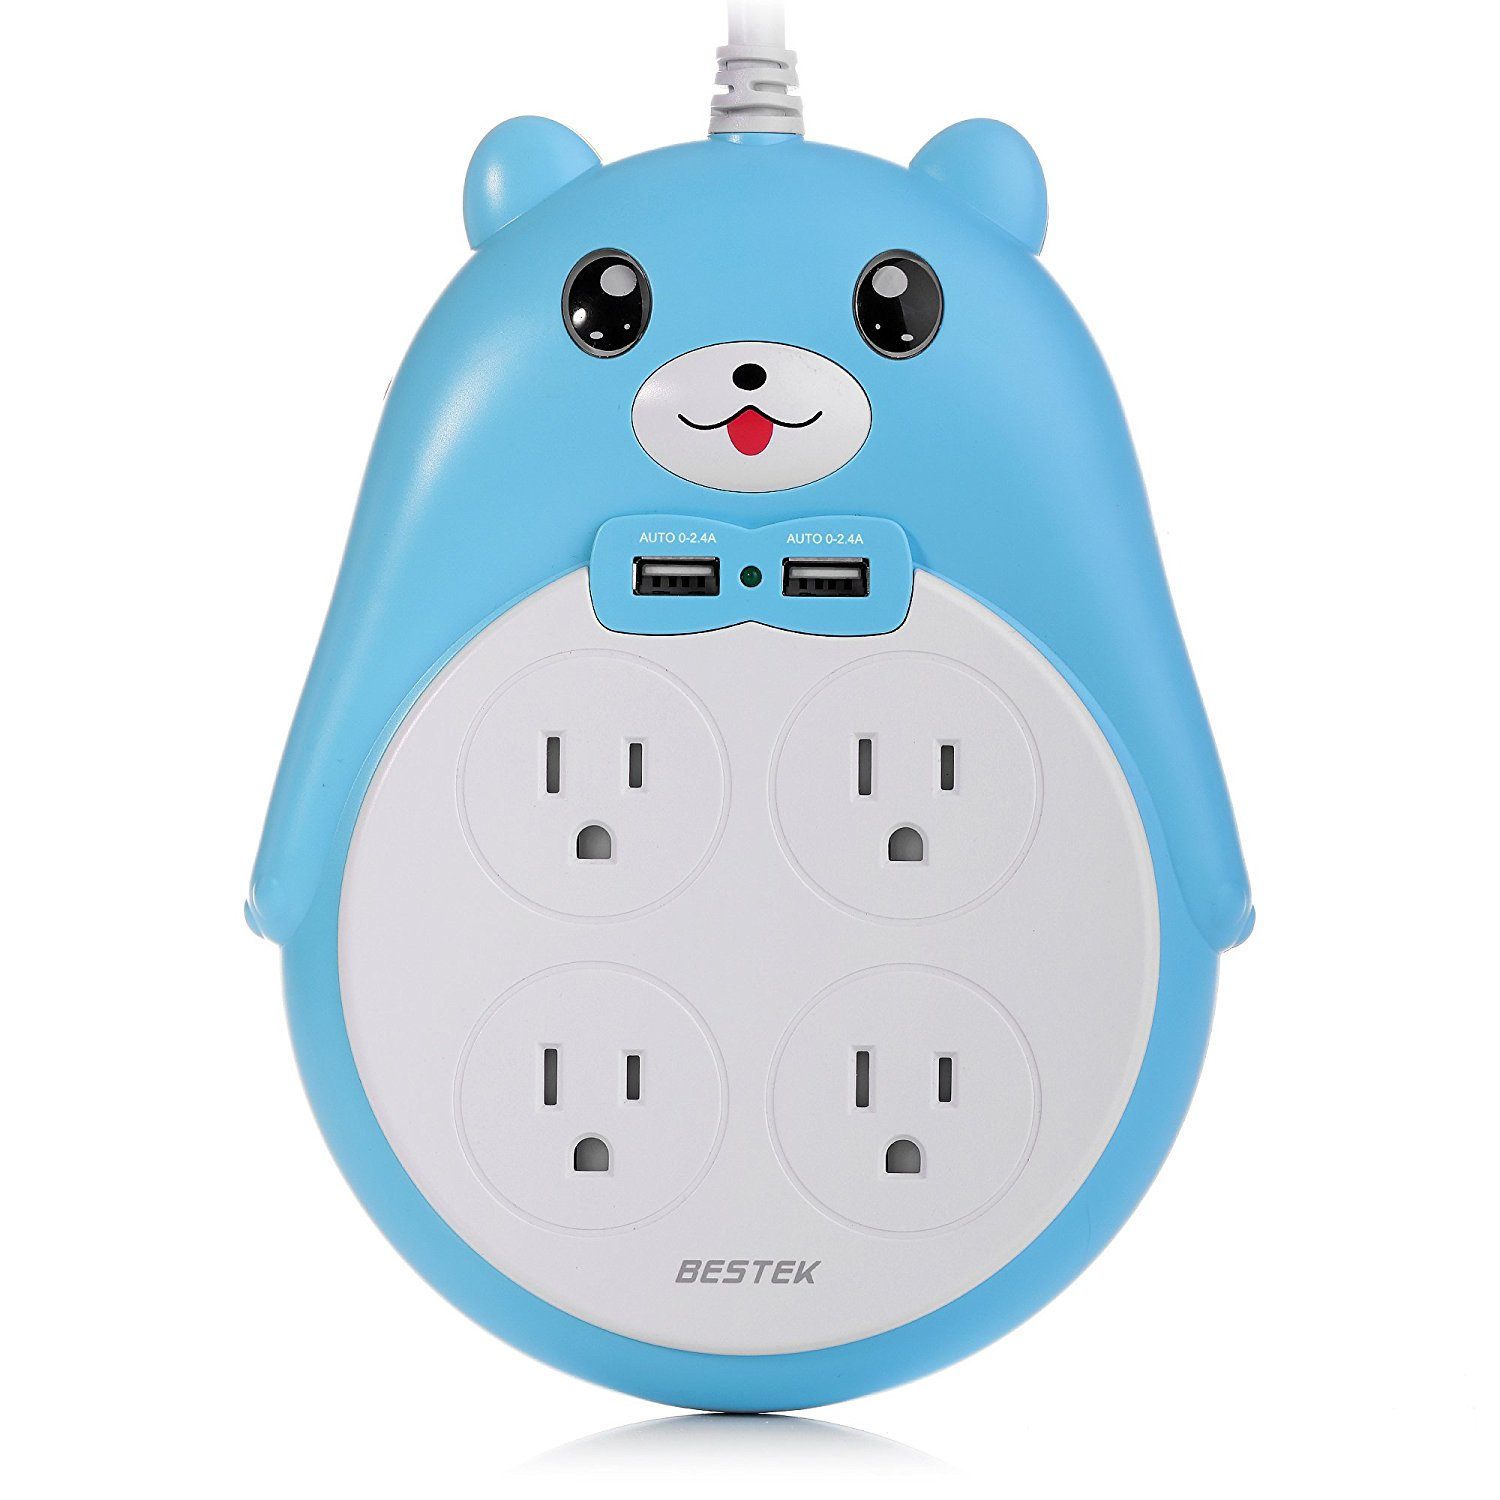 BESTEK Surge Protector Power Strip with USB for Girls, Cute Little Bear Power Outlet with 4-Outlet 2 USB 5.9-Foot Cord in Dorm or Bedroom, 1875W & 900Joule